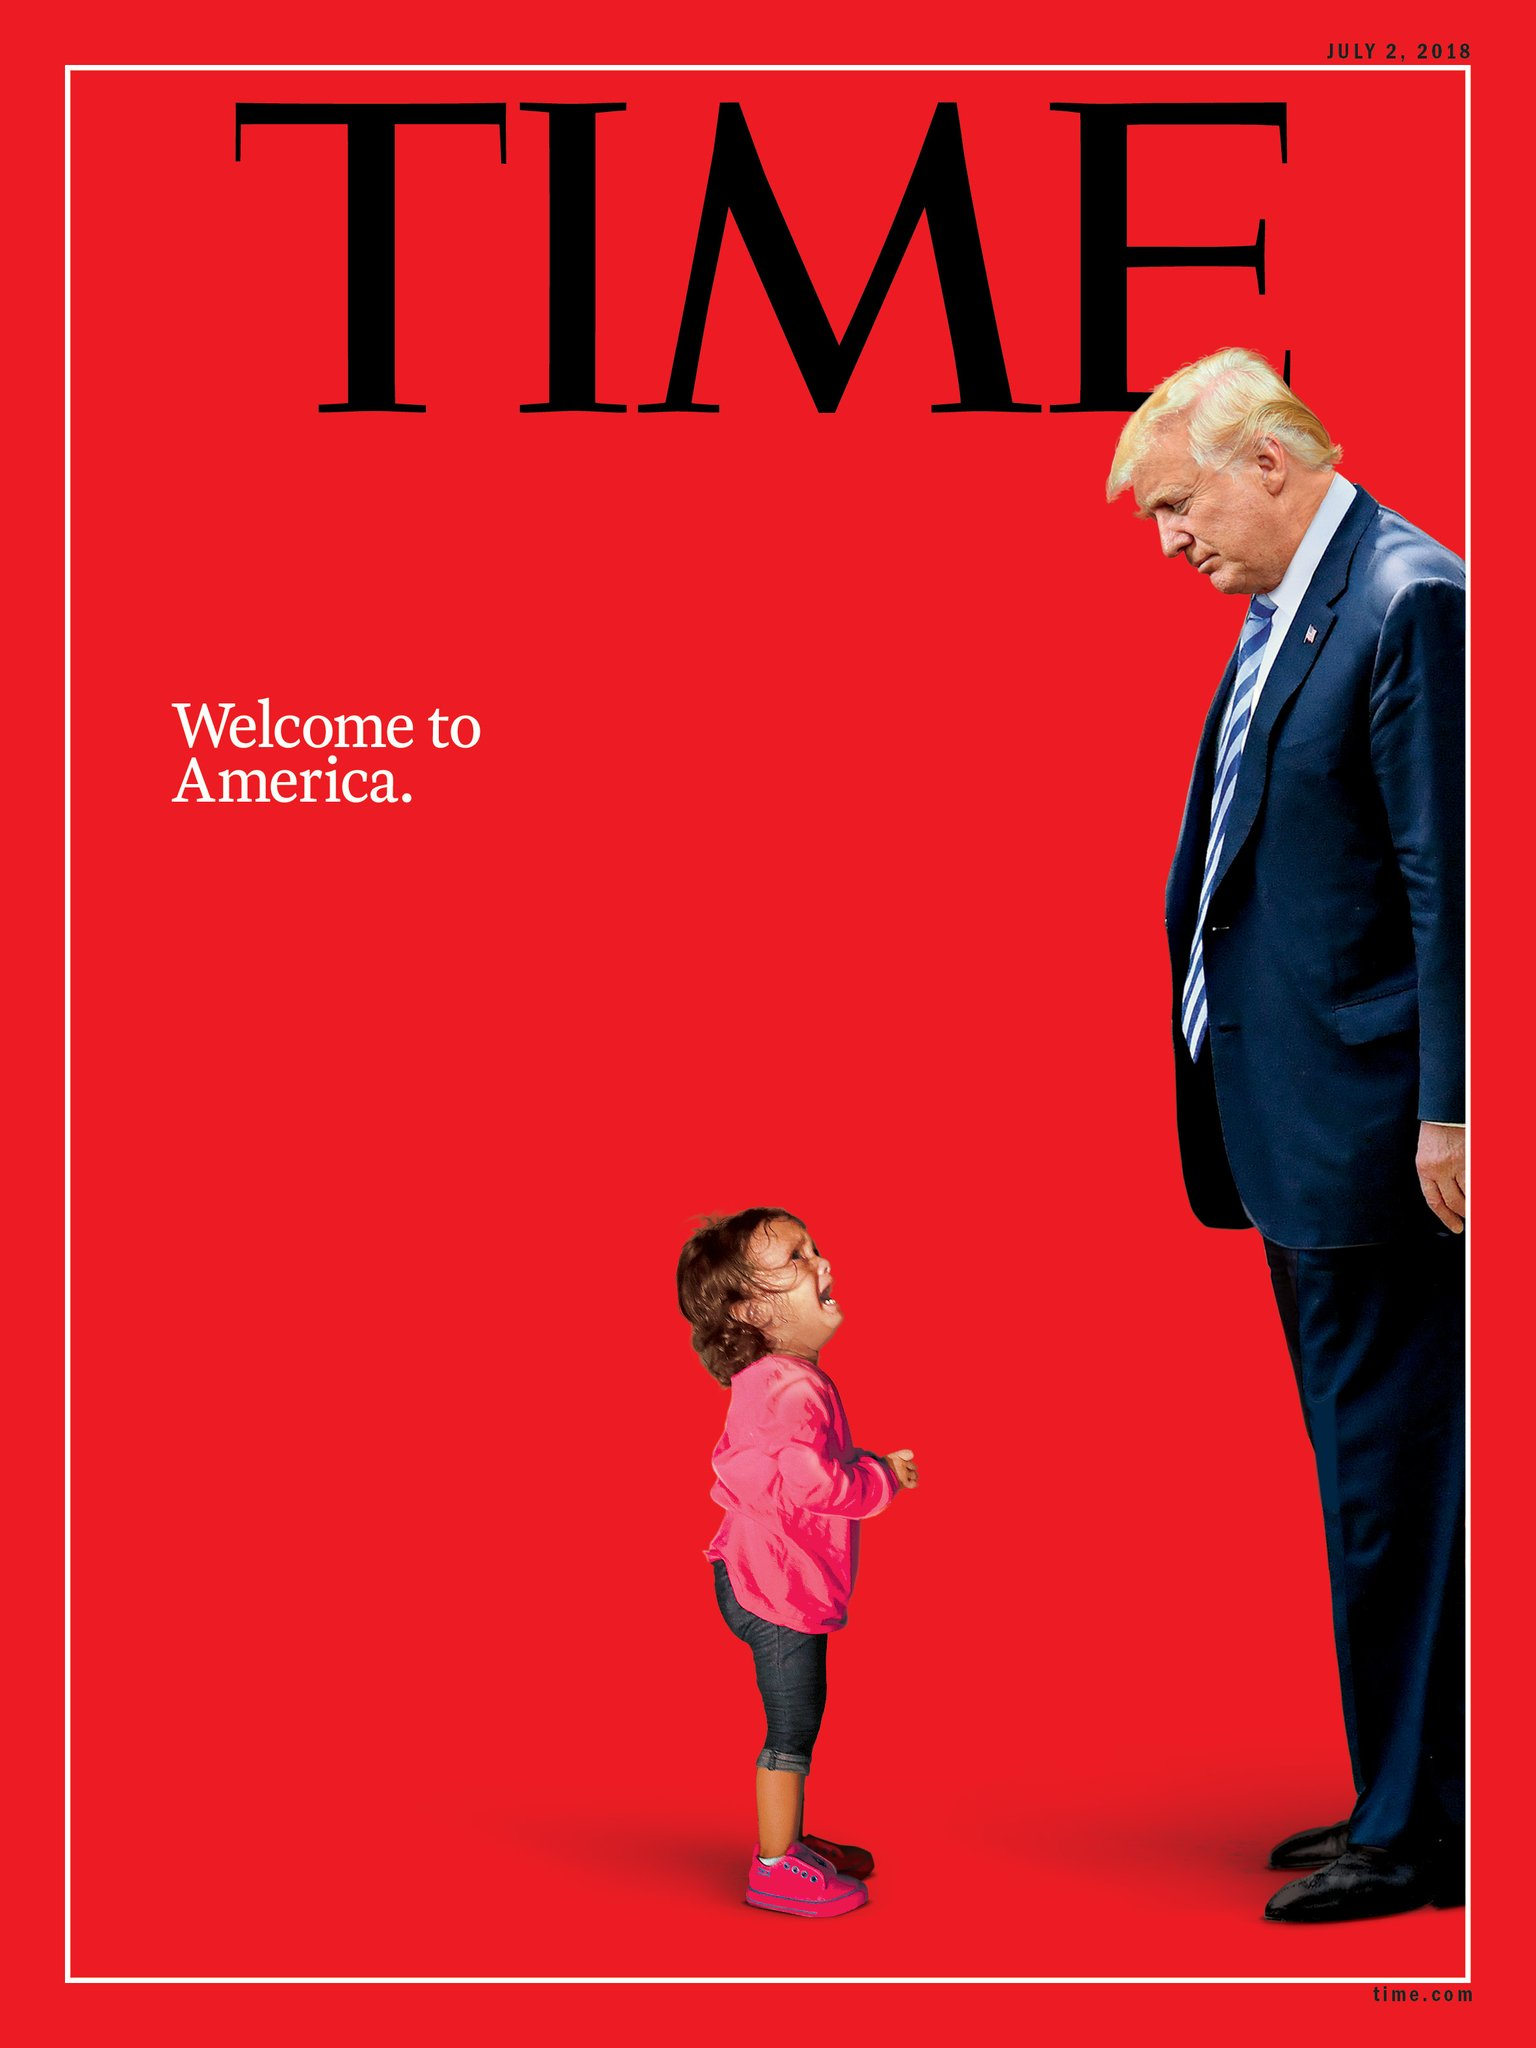 The July cover of @TIME:   'Welcome to America.'   https://t.co/Oc8MS8zijI https://t.co/Rk7TWJ3ELO